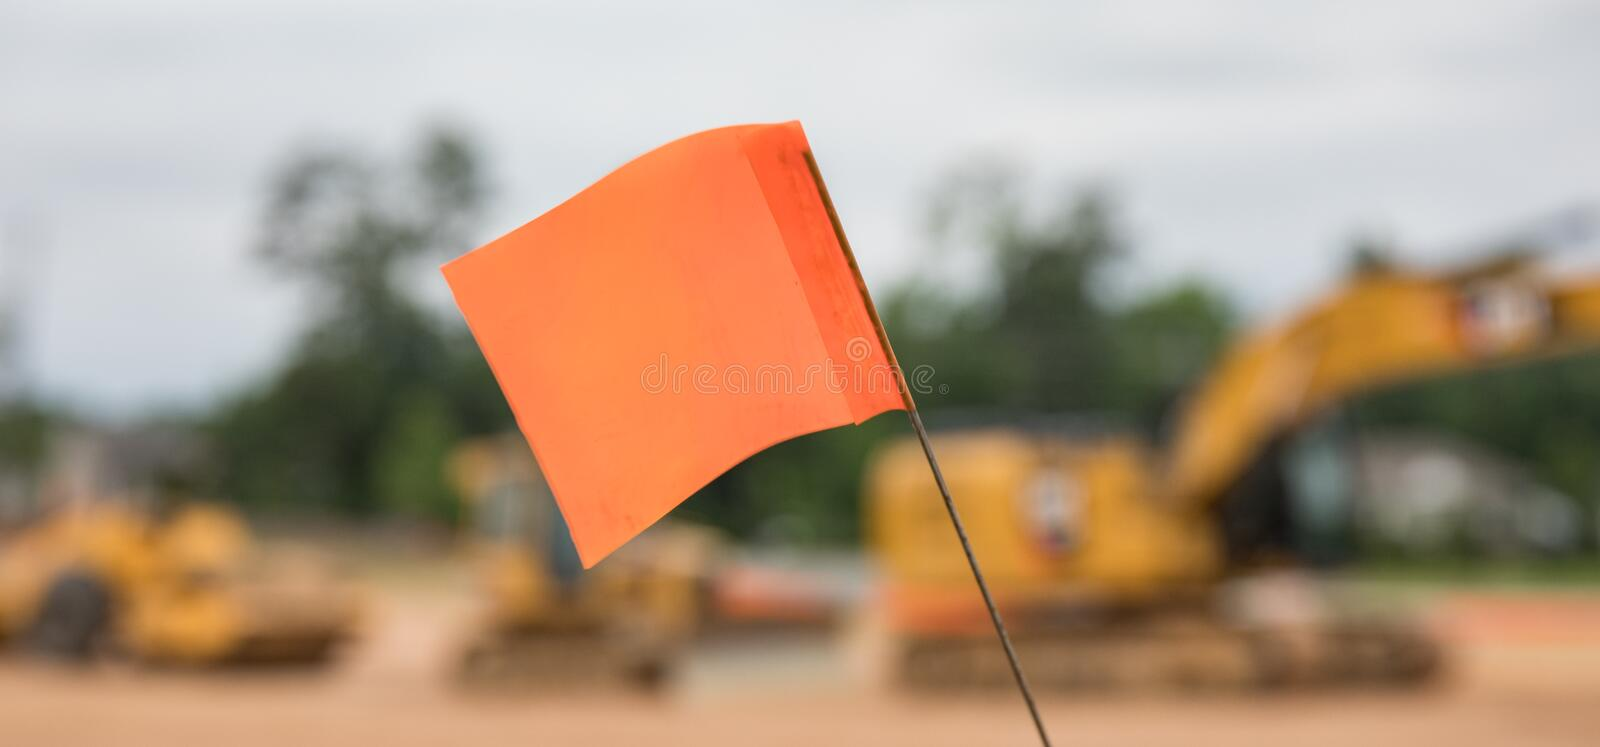 Bokeh shot of a warning flag in front of a row of heavy construction equipment. royalty free stock photo